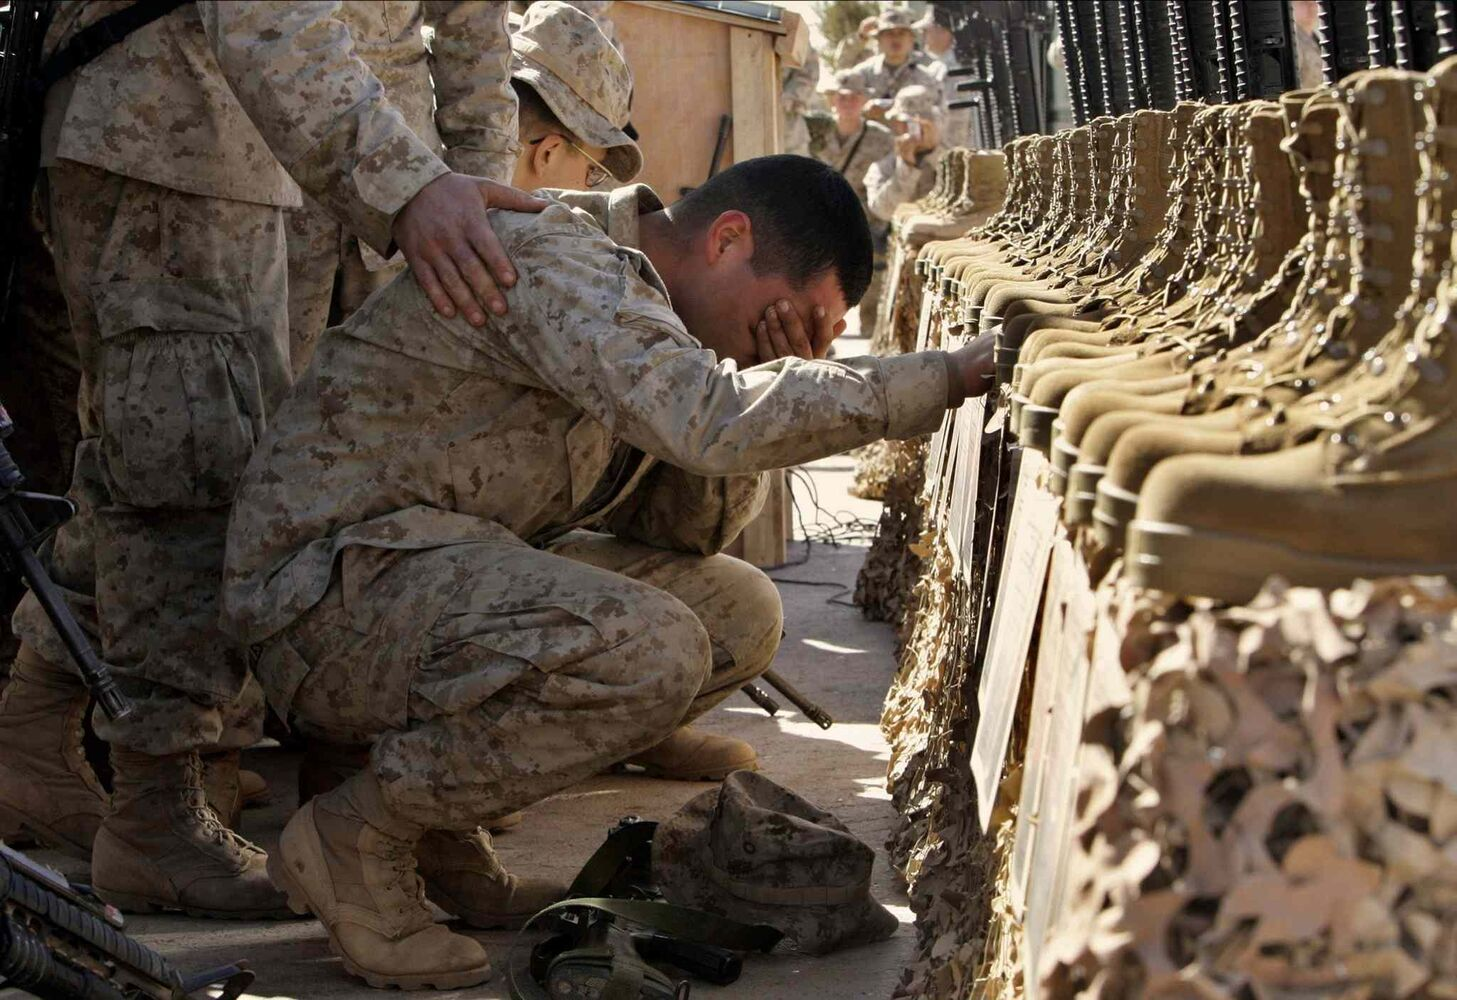 Feb. 2, 2005: A U.S. Marine cries during the memorial service for 31 killed U.S. servicemen at Camp Korean Village, near Rutbah, western Iraq.  (Anja Niedringhaus / The Associated Press)